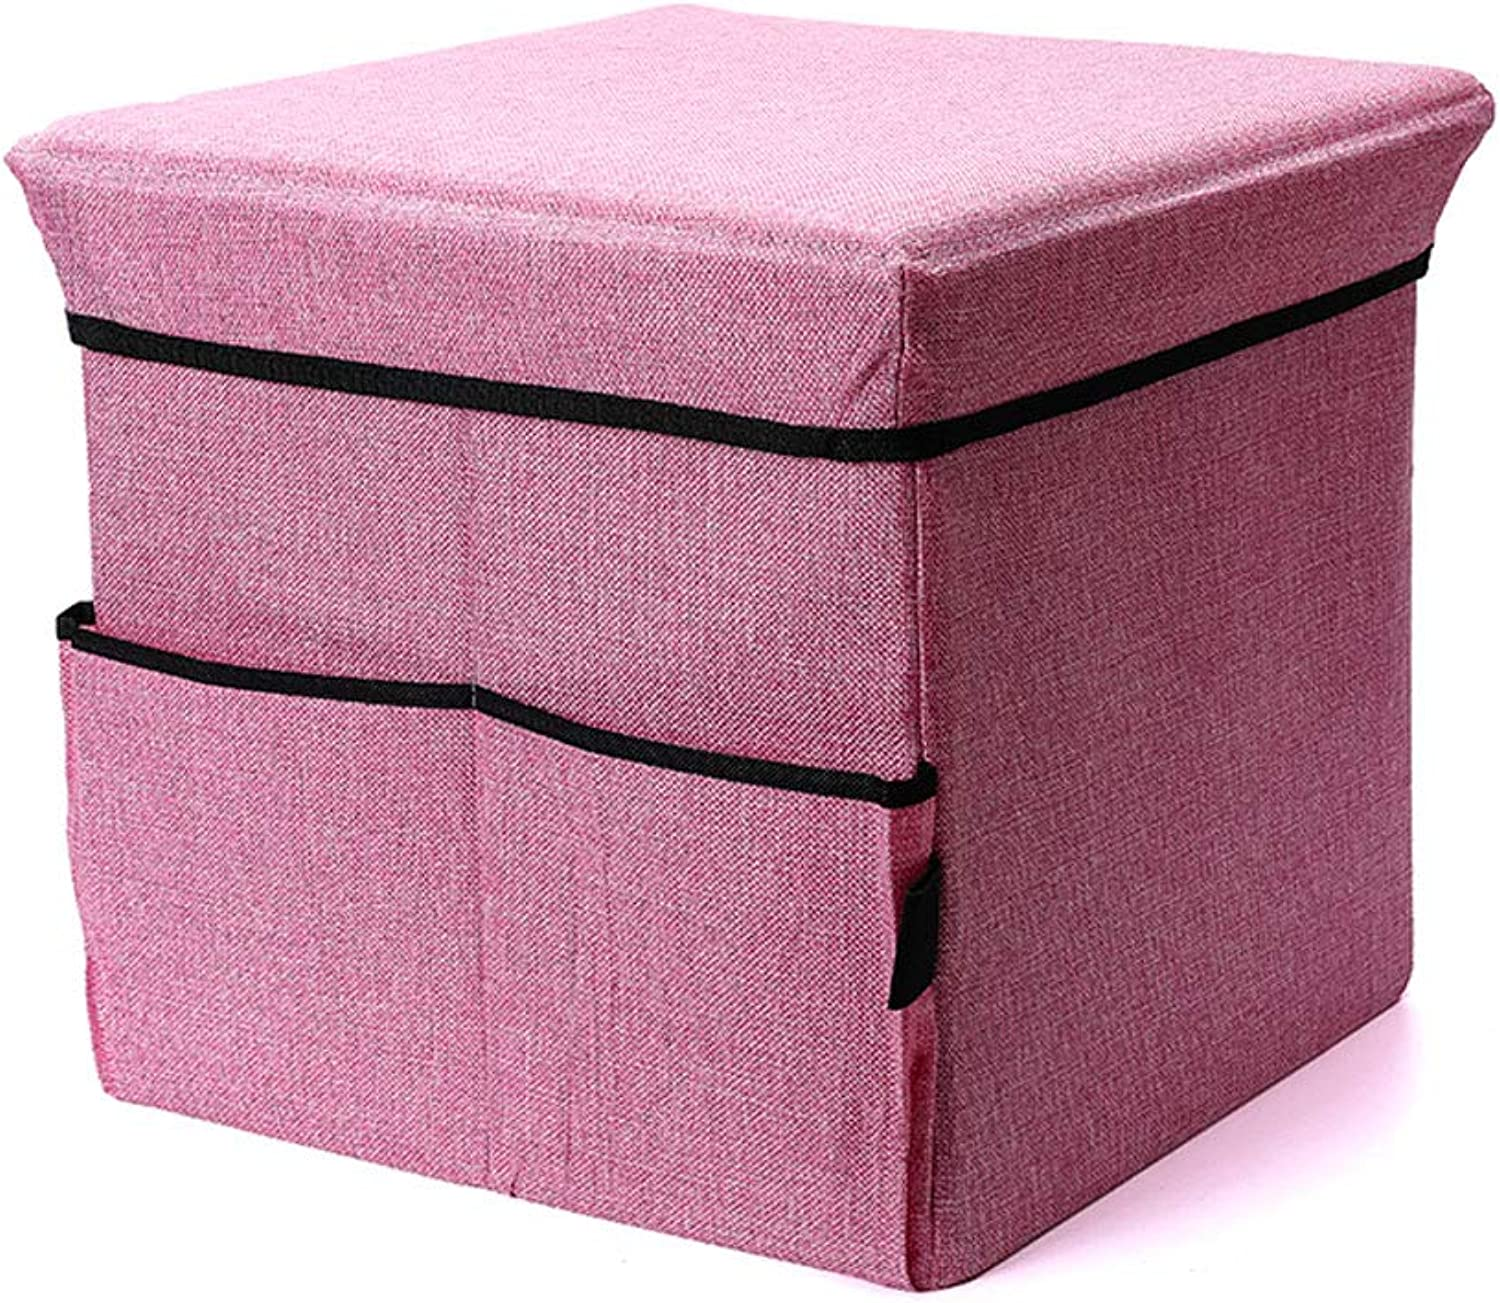 NJ Storage stool Multifunction Household Collapsible Finishing Storage Stool, Living Room Bedroom Foyer Can Sit Storage Stool (color   PINK, Size   L38xW38xH36cm)